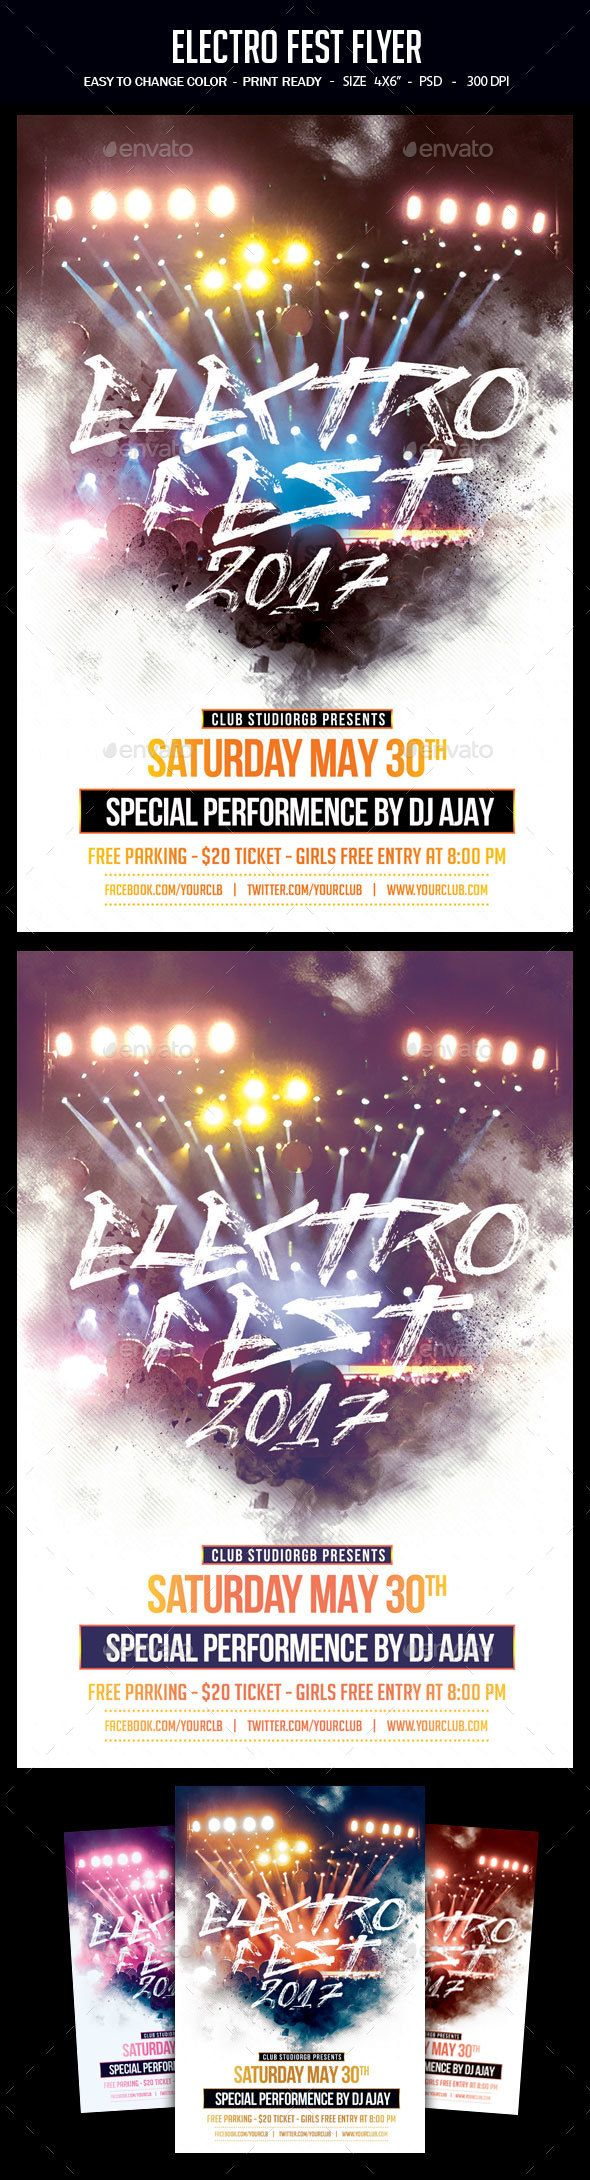 Electro Fest Flyer Pinterest Electro Music Flyer Template And